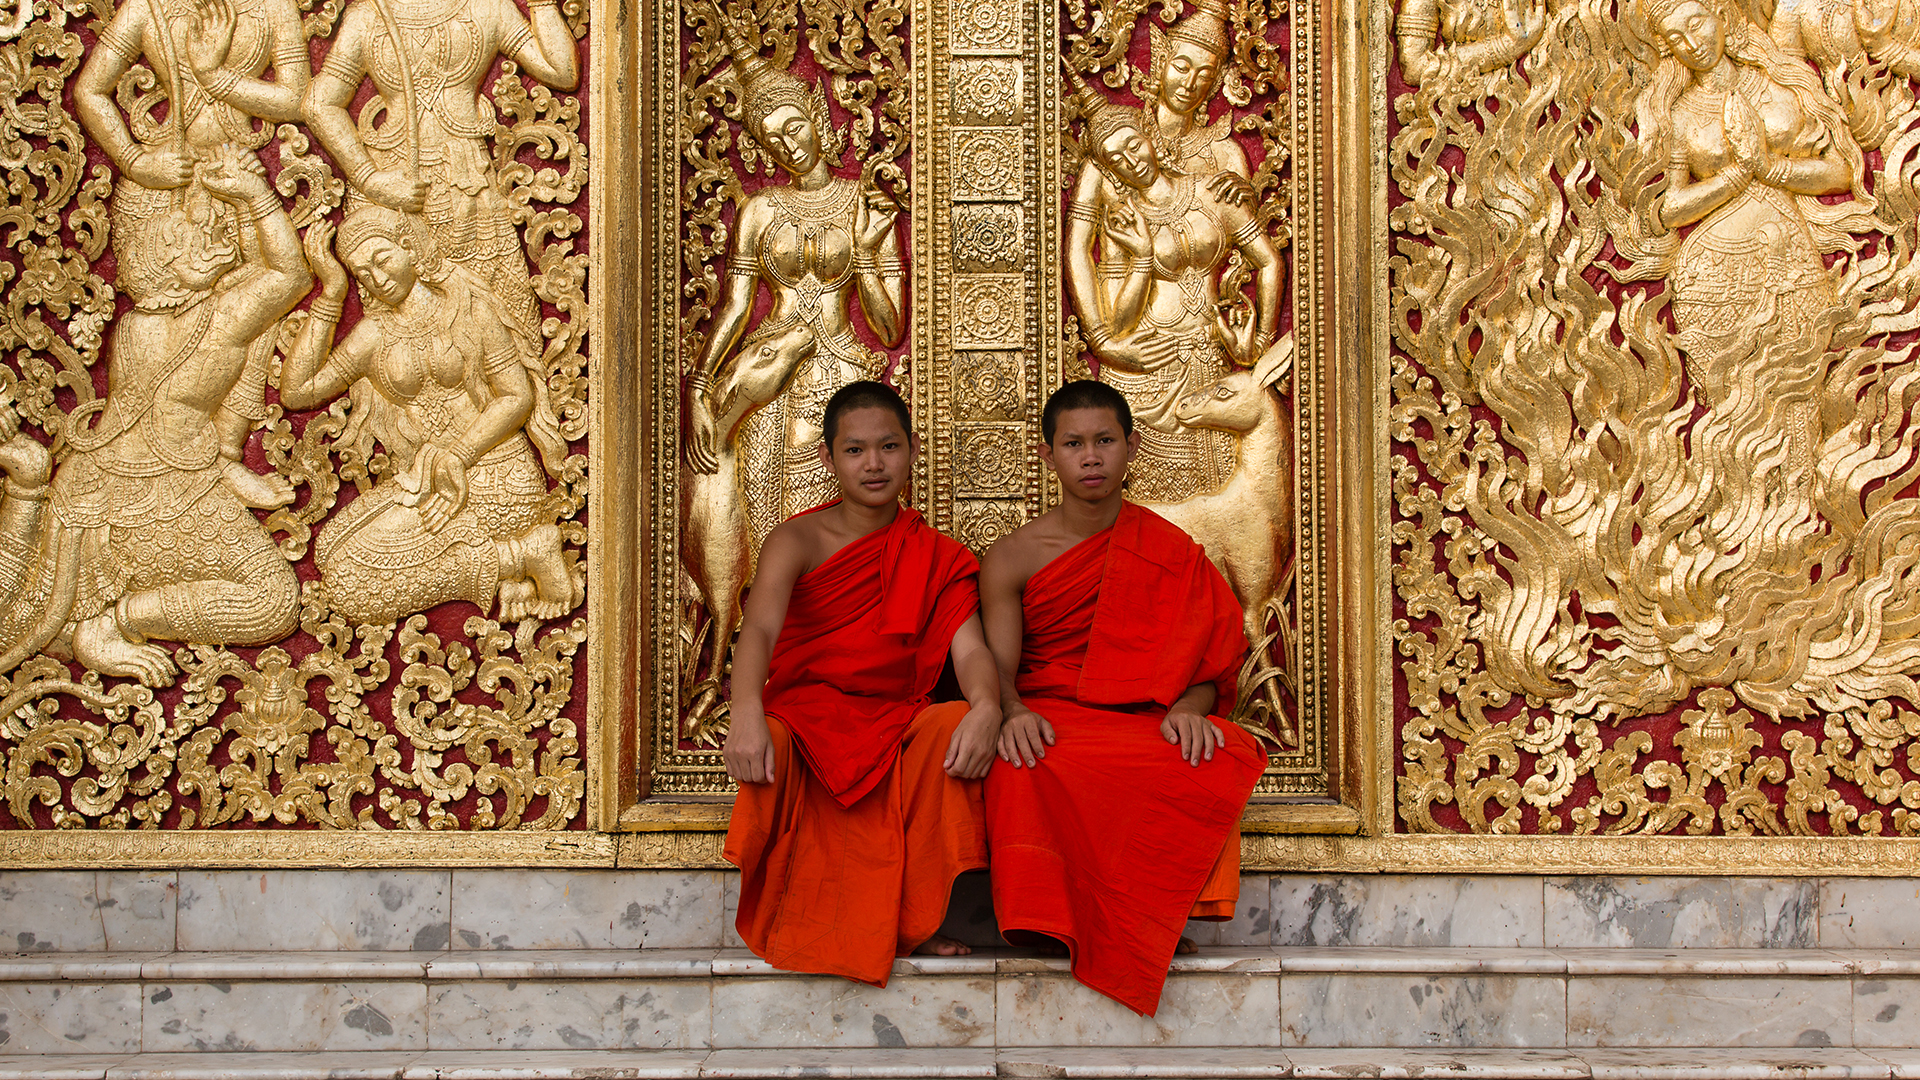 Luang Prabang - Wat Xieng Thong, Monks, Golden Doors